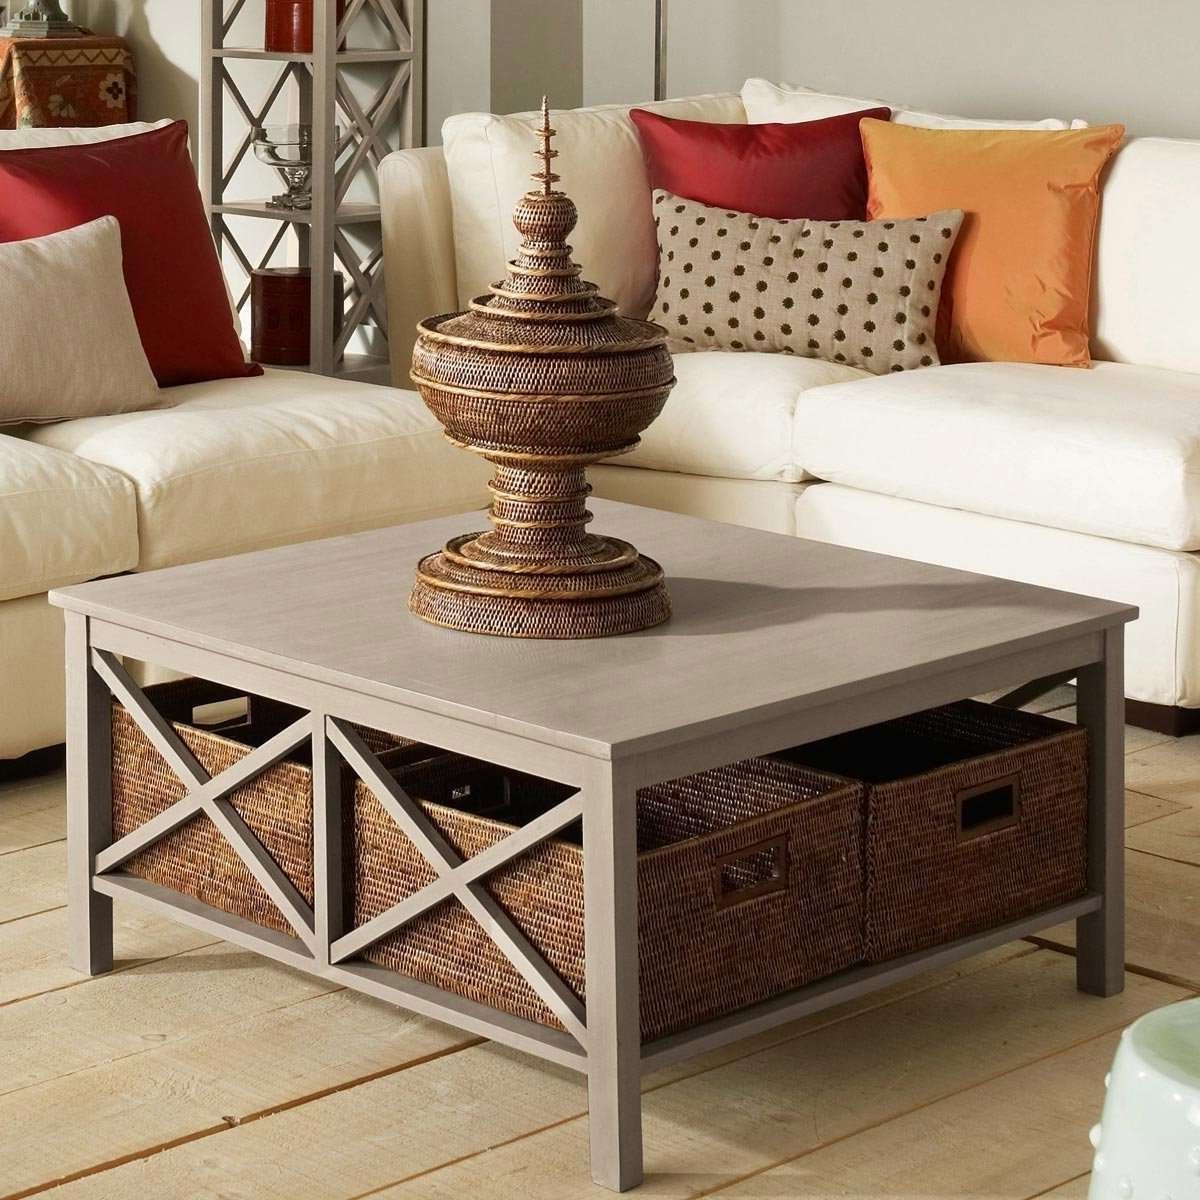 Famous Large Square Coffee Table With Storage With Square Coffee Table With Storage More Than One Function In One (View 4 of 20)